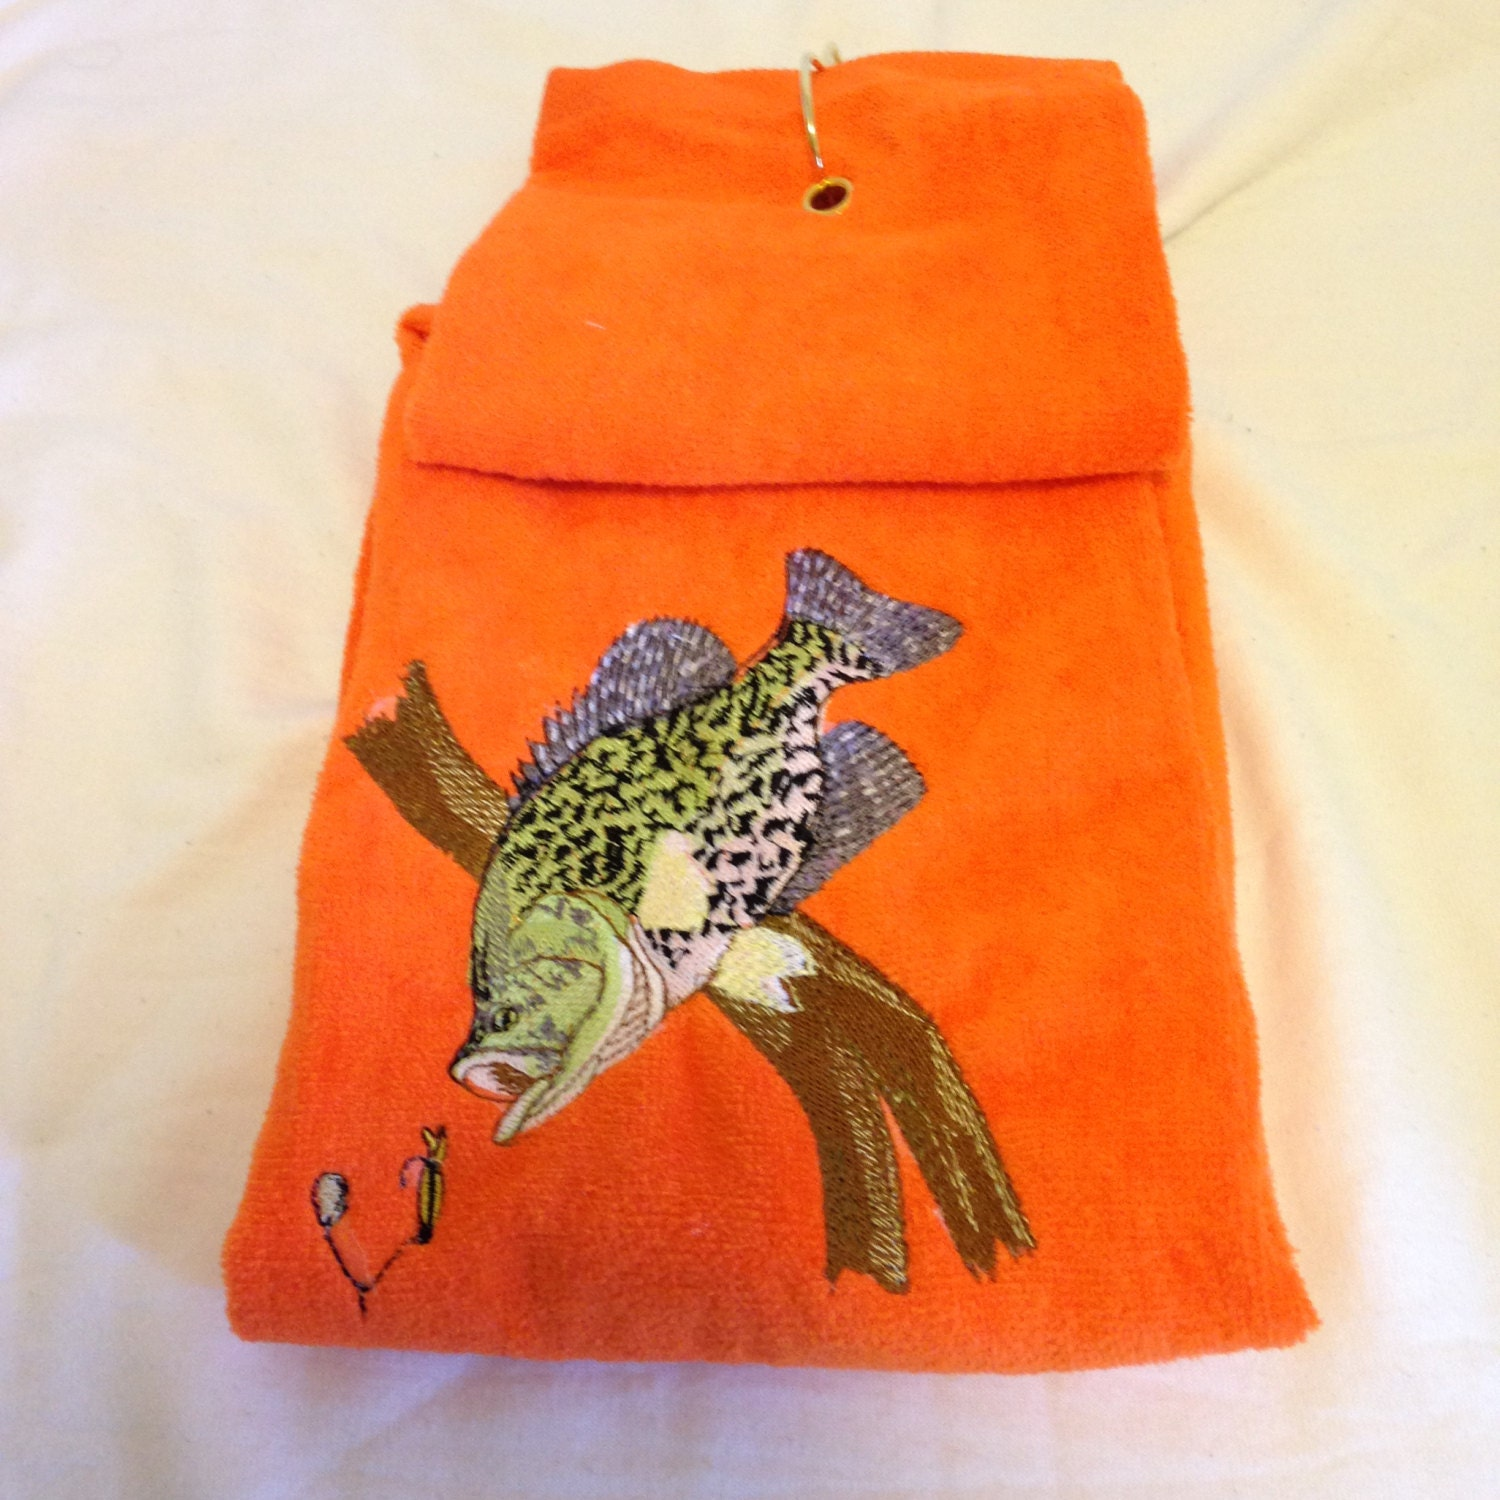 Embroidered Golf Towel Hunting Towel Or Fishing Towels This